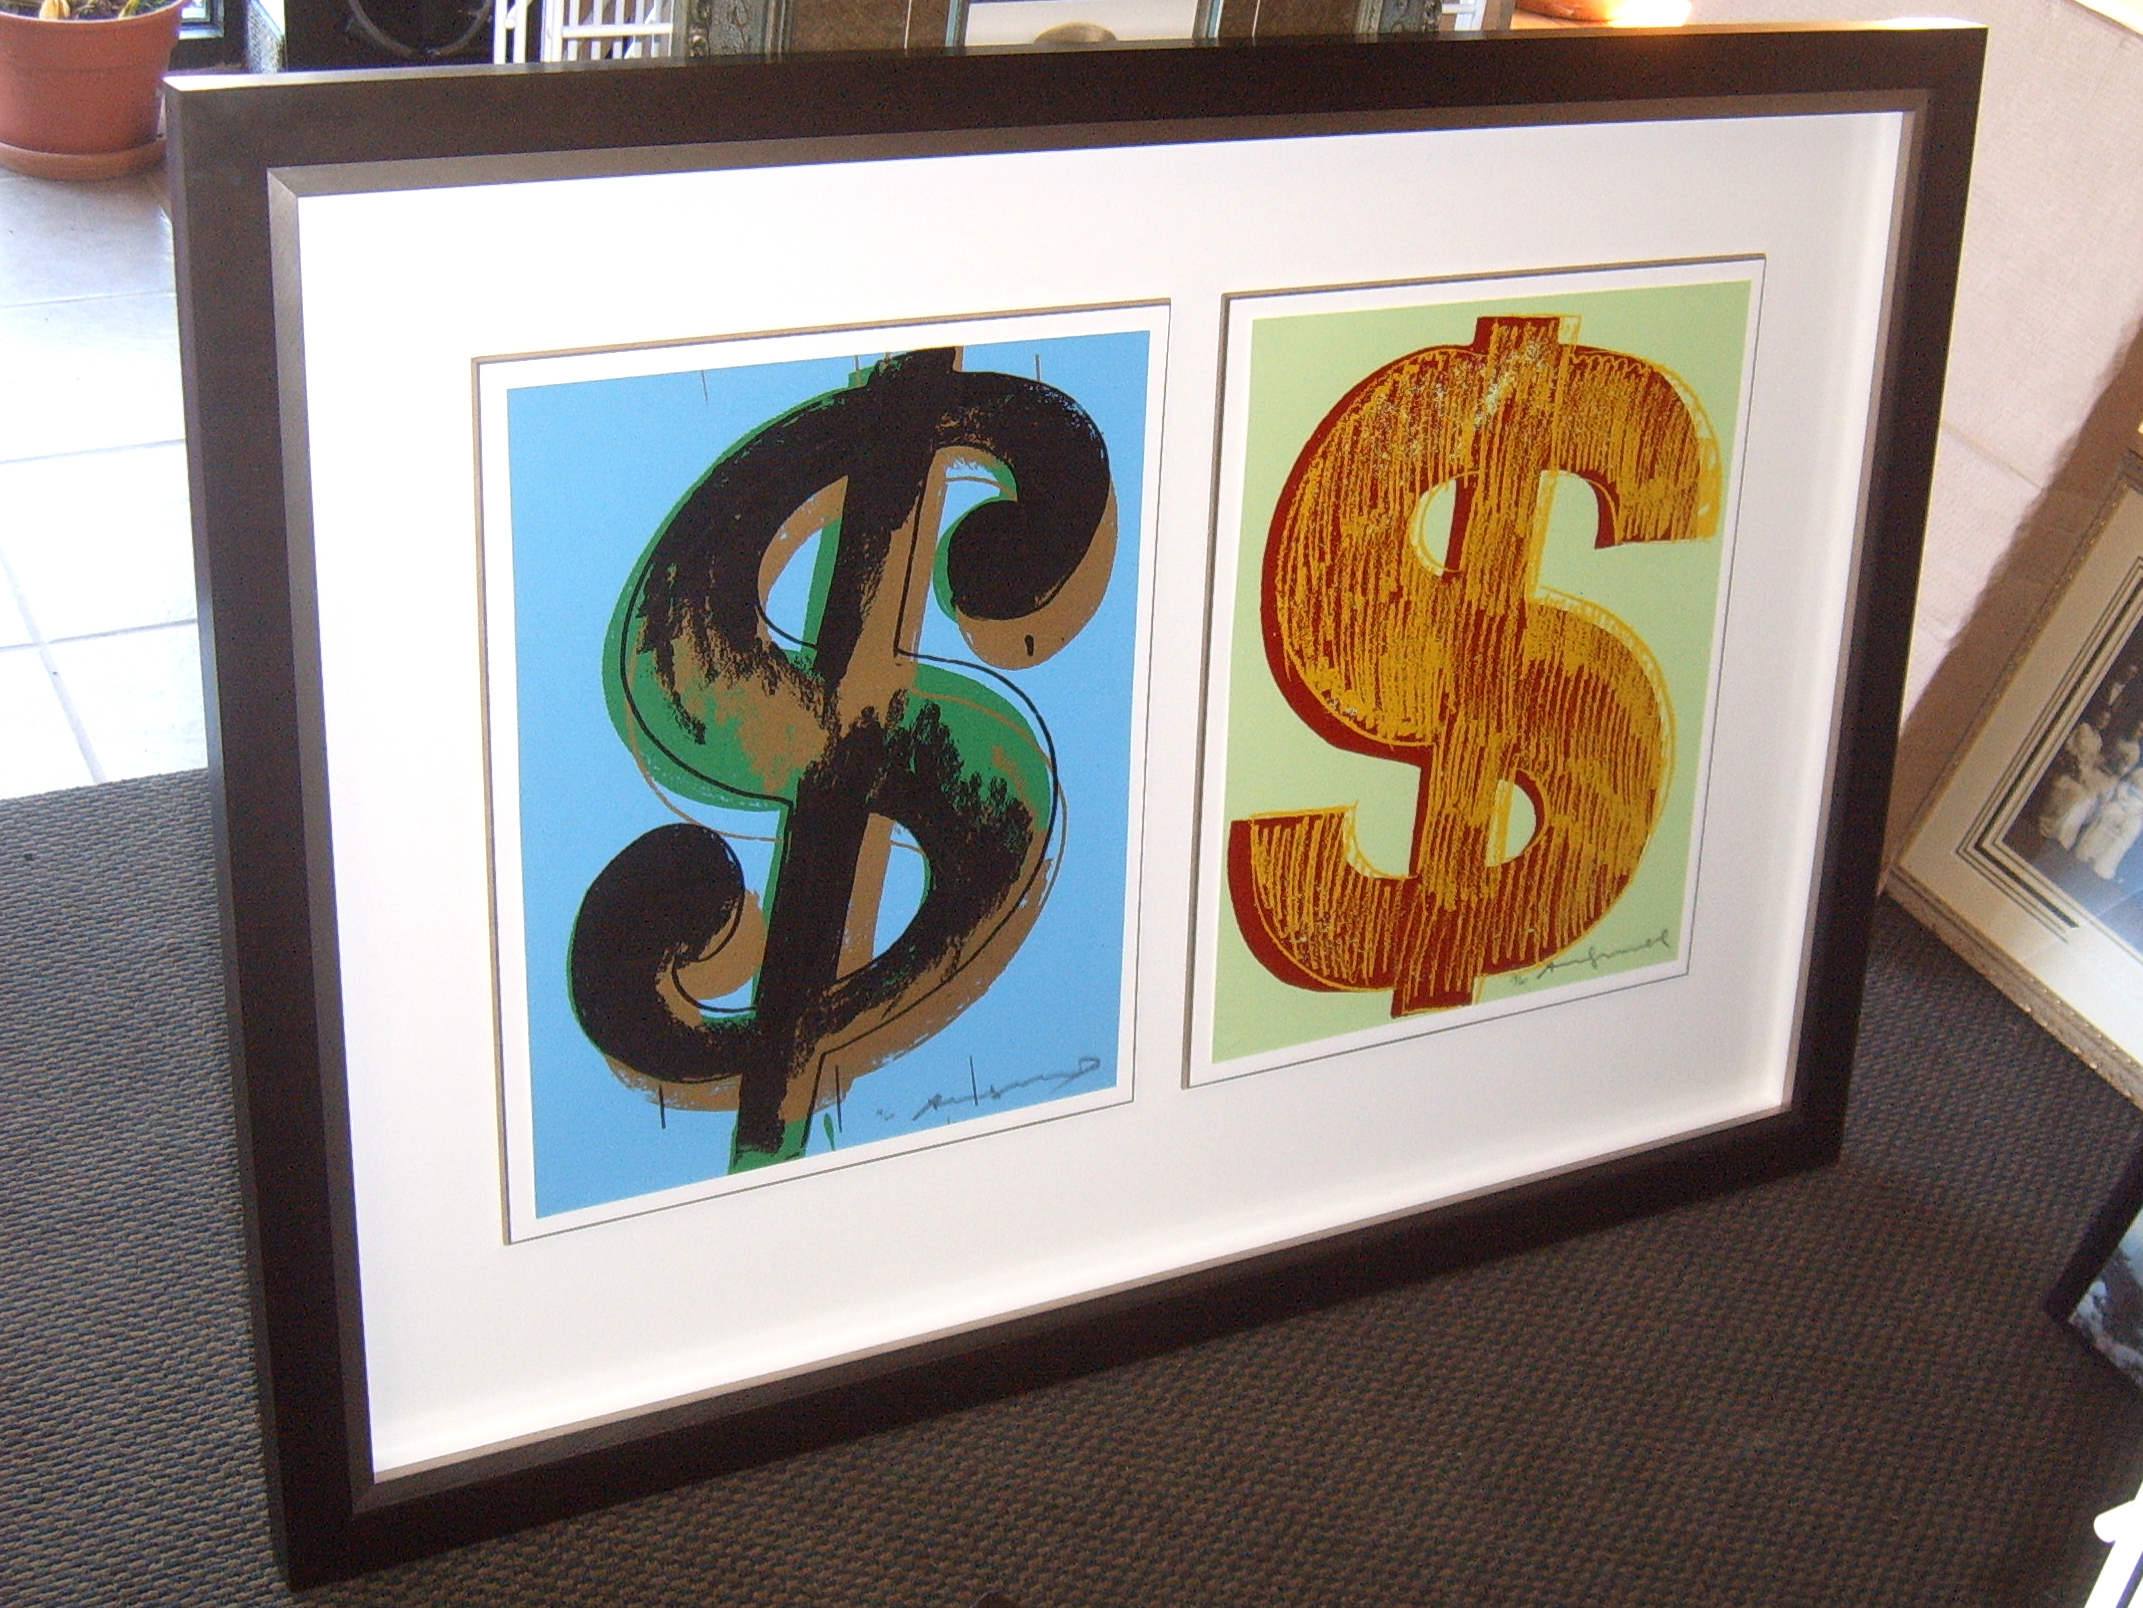 Limited Edition Andy Warhol Prints.